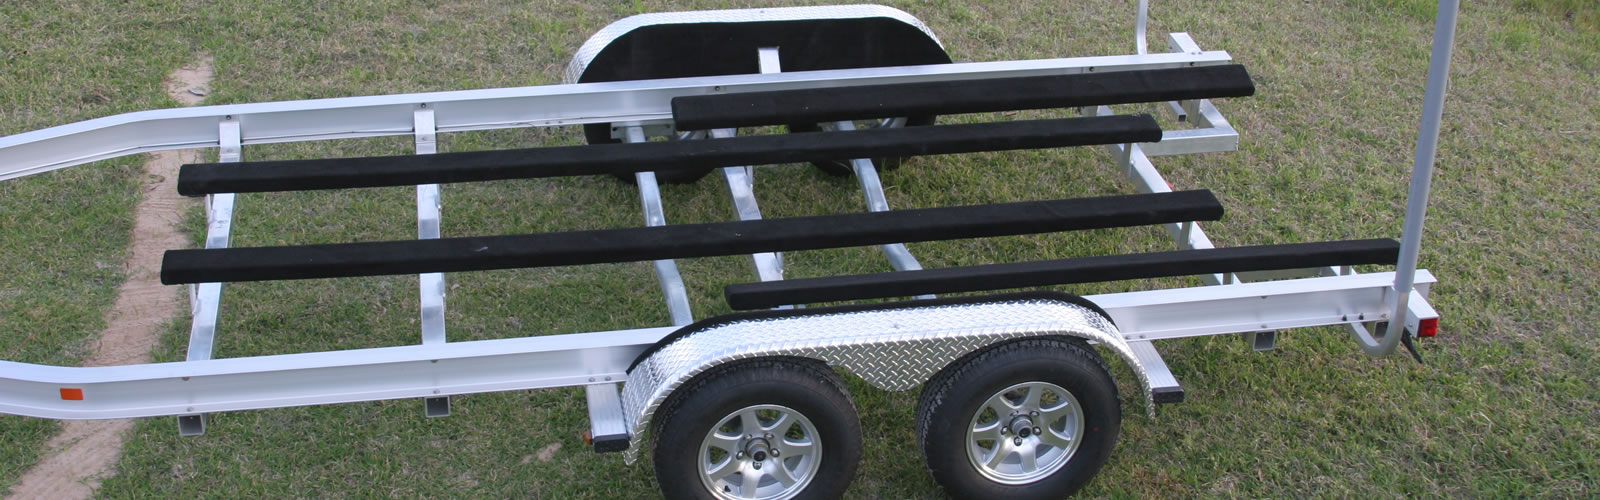 We take pride in every aluminum trailer we build